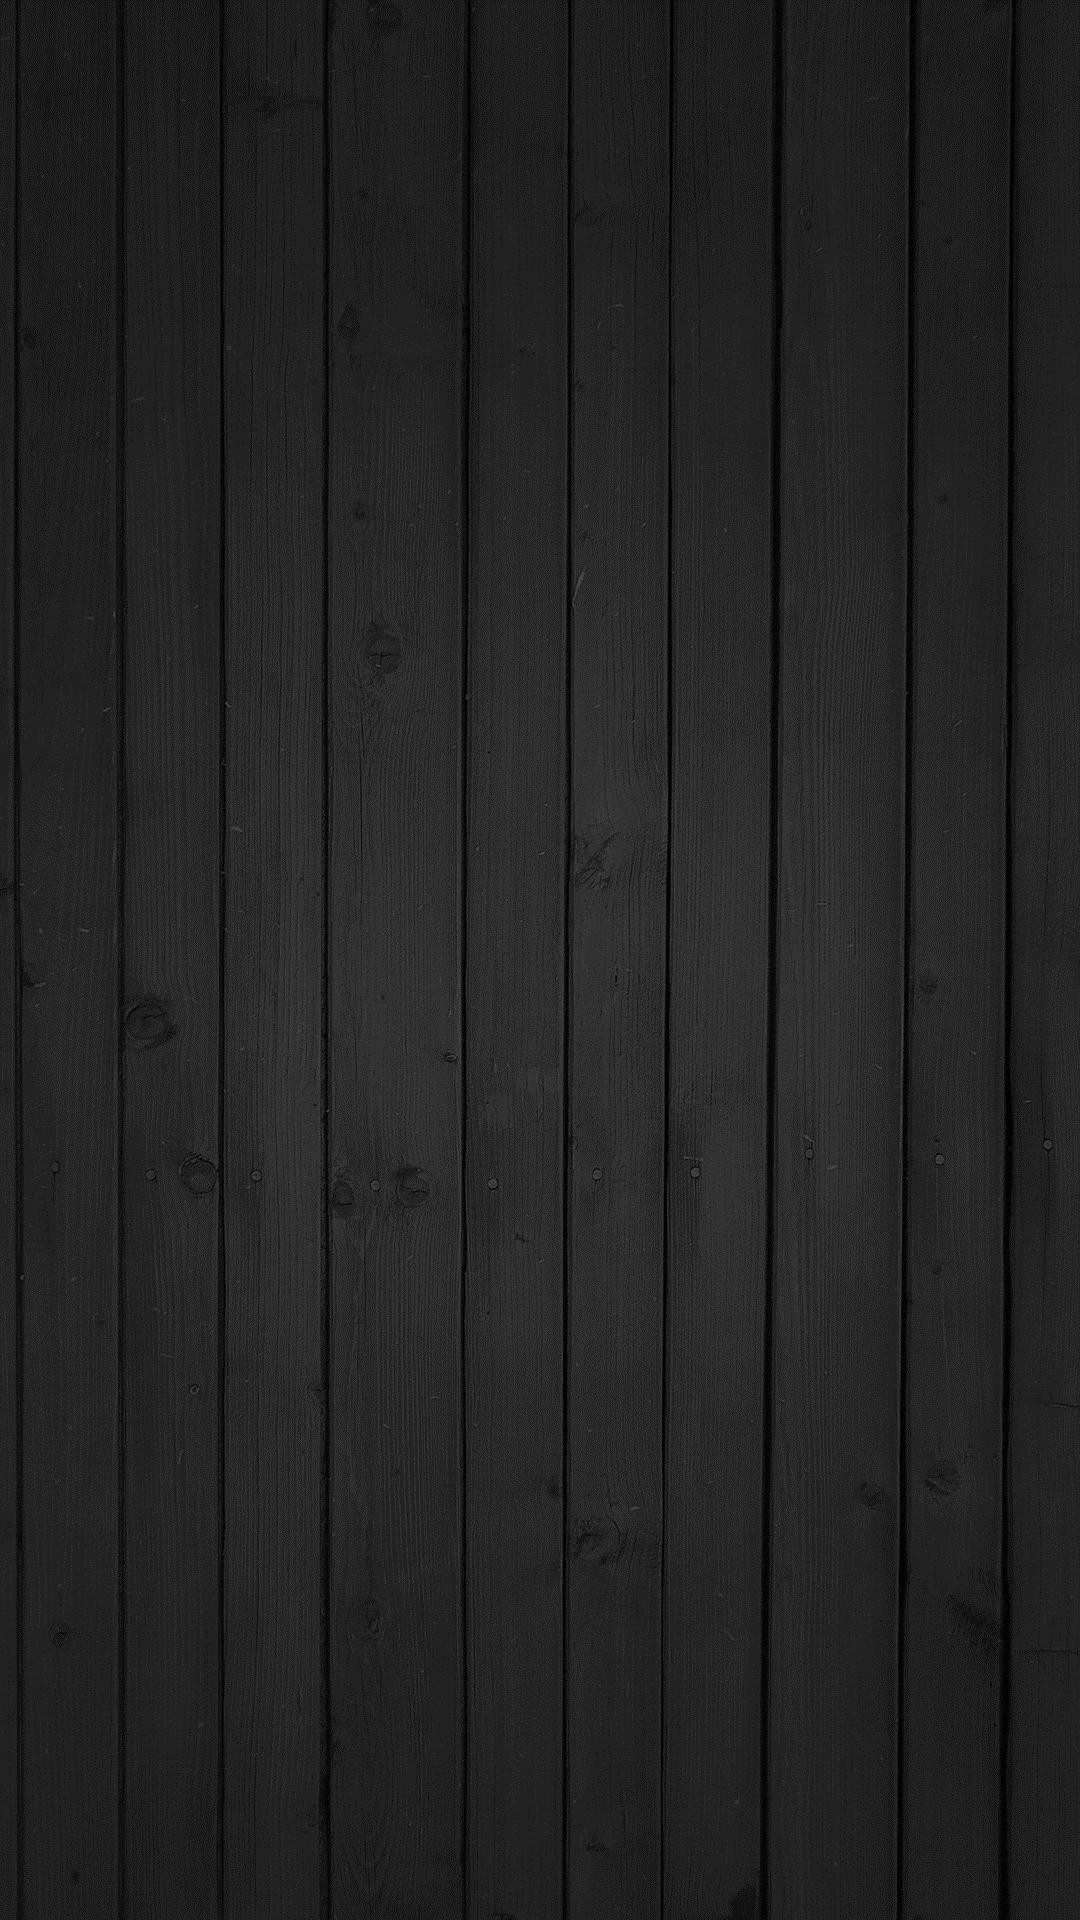 Black Wood Texture Android Wallpaper …